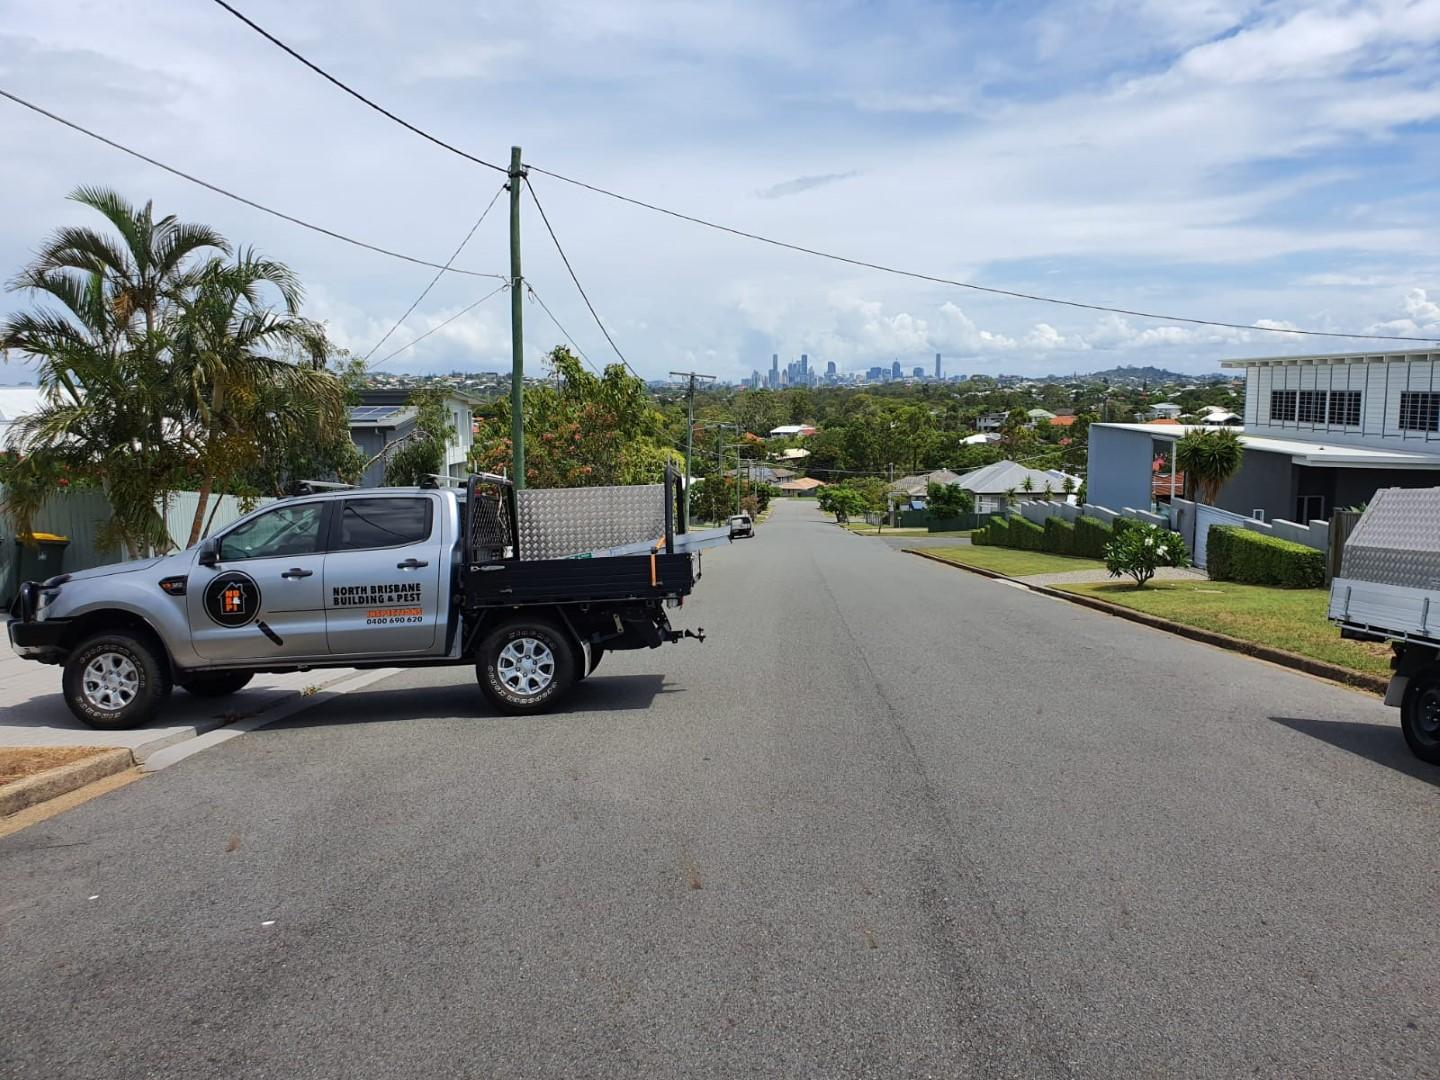 Brett's Building inspection Ute on the driveway of a building inspection house with views of Brisbane CBD in the background